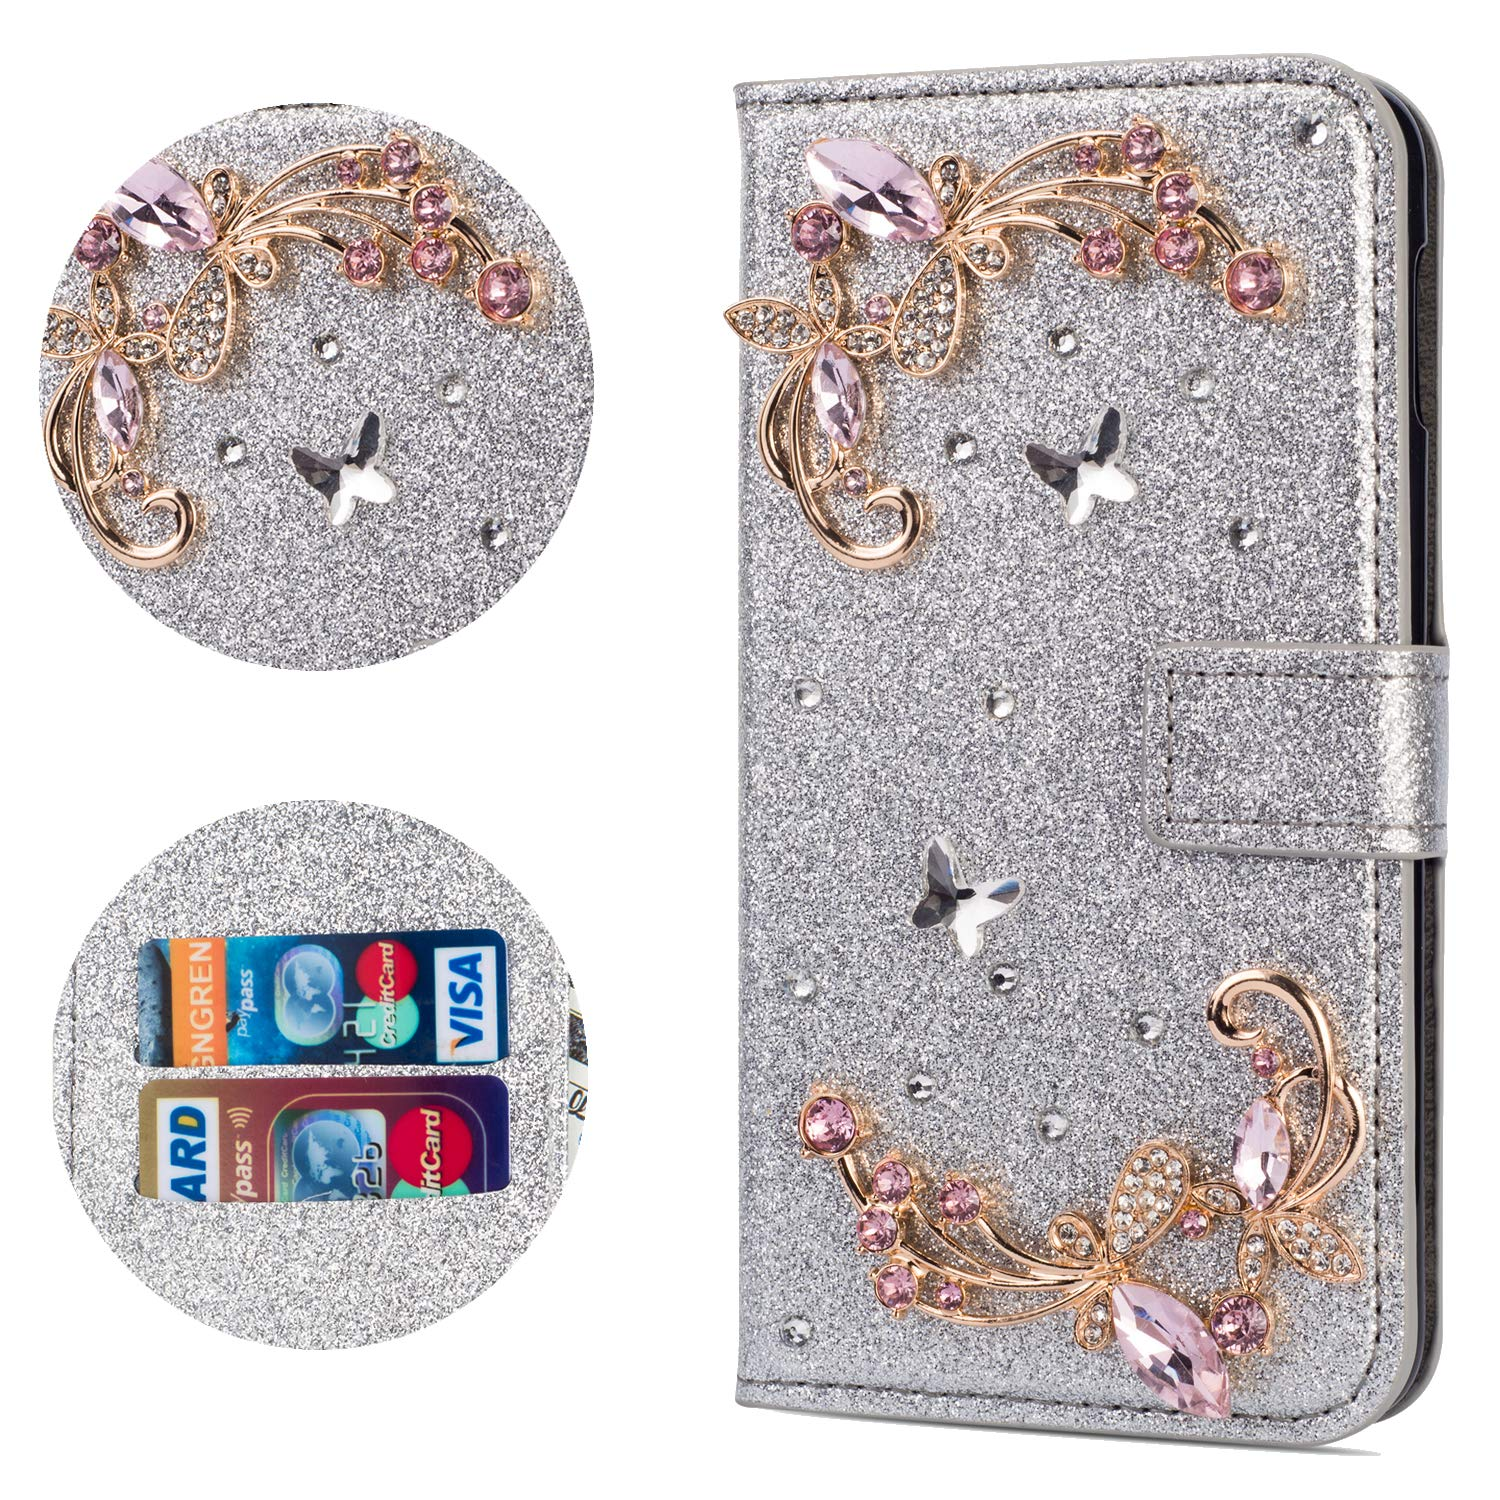 Stysen Flip Case for iPhone Xs Max 6.5'',Leather Cover with 3D Handmade Crystal Diamonds Butterfly Glitter Floral Wallet Magnetic Clasp for iPhone Xs Max 6.5'' by Stysen